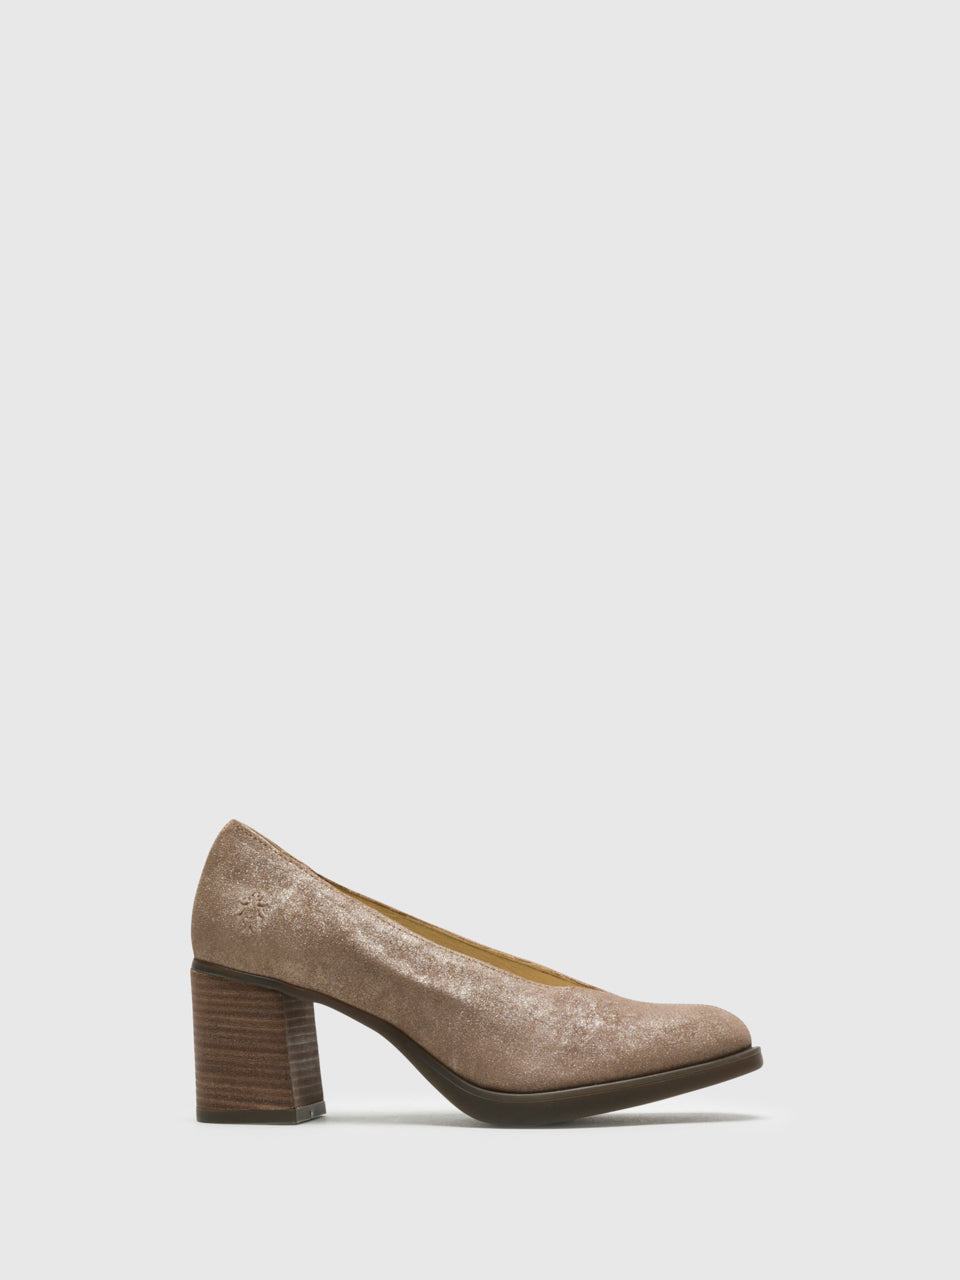 Fly London DarkSalmon Round Toe Pumps Shoes